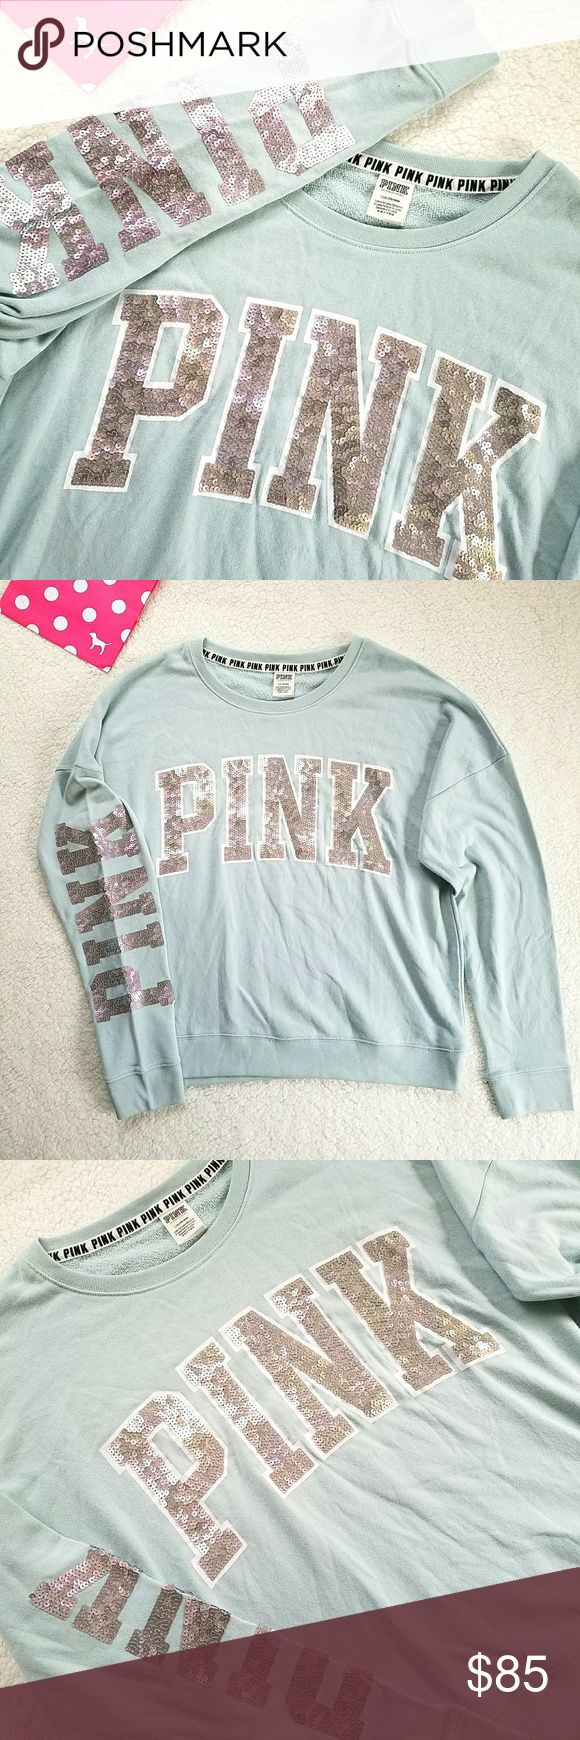 Victoria's Secret PINK Bling Campus Crew Pullover Iridescent Bling Mint Pullover Campus Crew Sweatshirt by Victoria's Secret PINK Size large Brand new without tag nwot  Soft mint color Terry cloth Bling logos on chest & arm Incredibly unusual matte iridescent sequins, see close up pictures to see the holographic color-shift effect Mix and match with your neutral leggings, yogas, jeans, joggers, sweatpants, and shorts! PINK Victoria's Secret Tops Sweatshirts & Hoodies